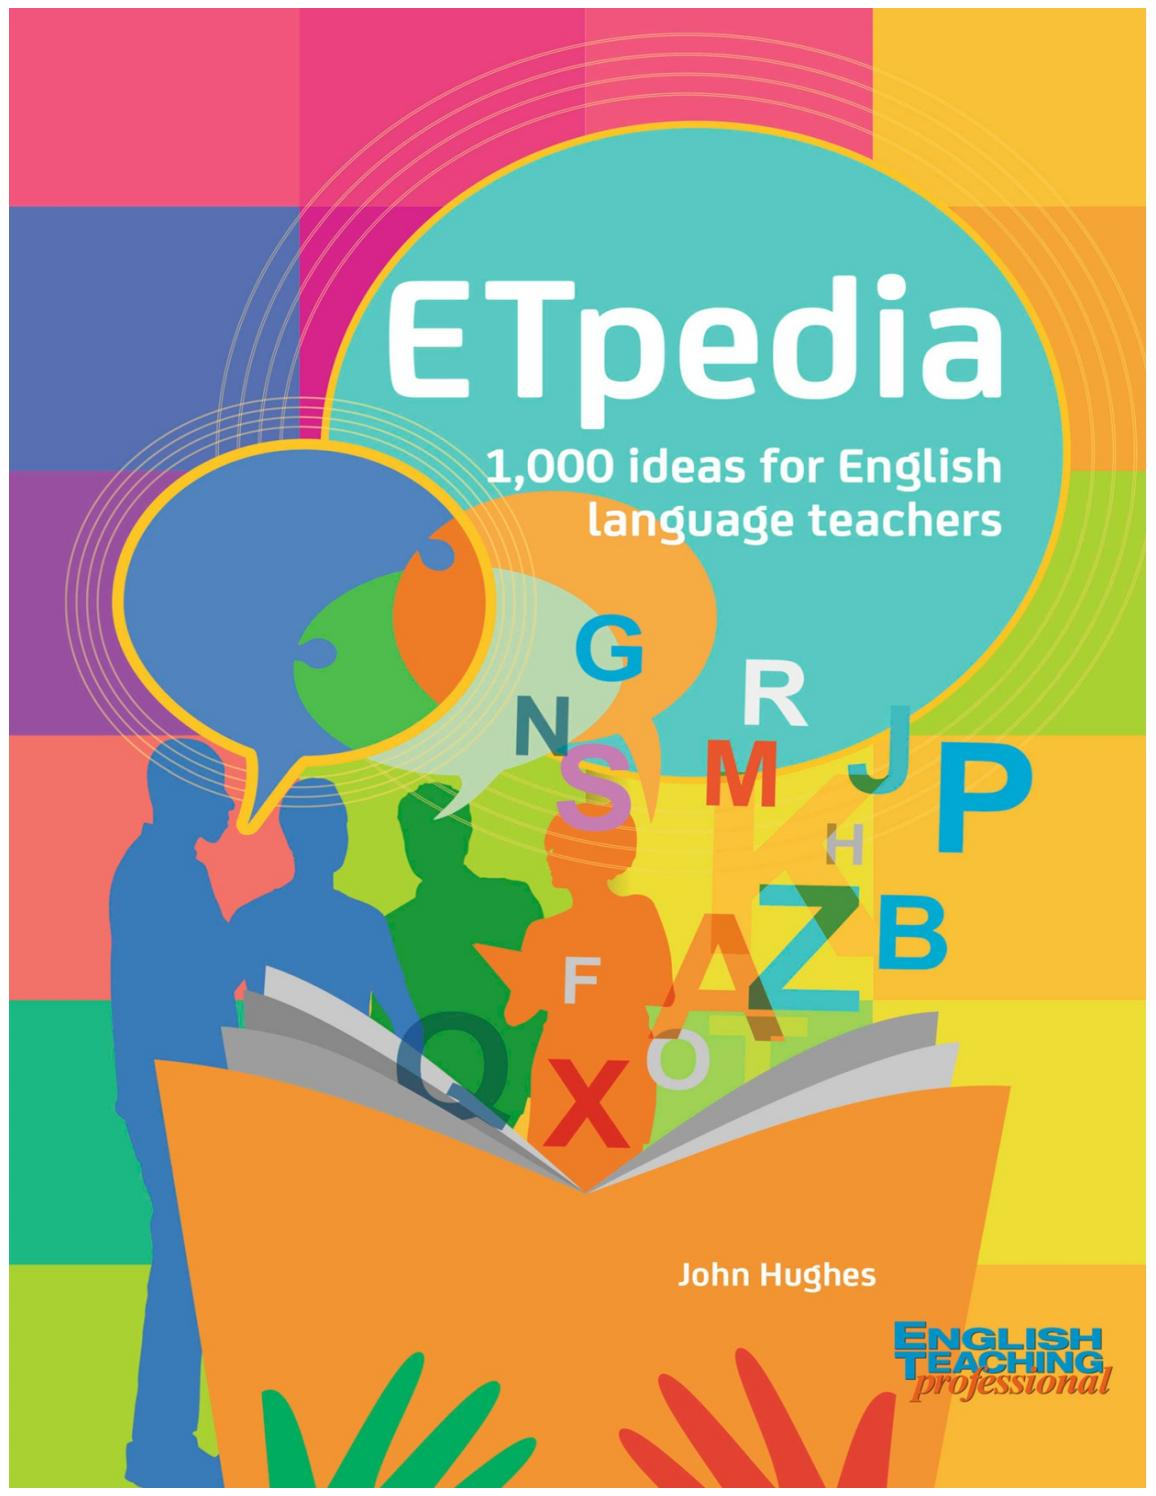 Topnotchenglish hughes john etpedia 1 000 ideas for english language